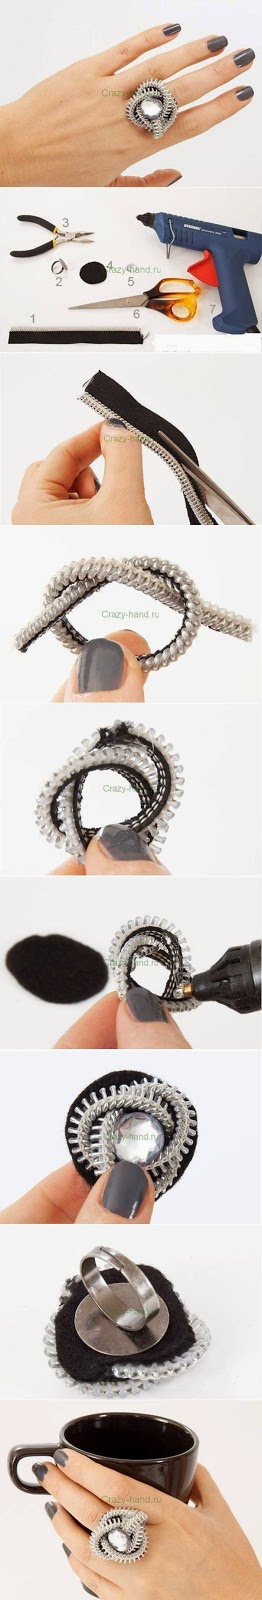 http://www.usefuldiy.com/es/diy-zipper-ring/